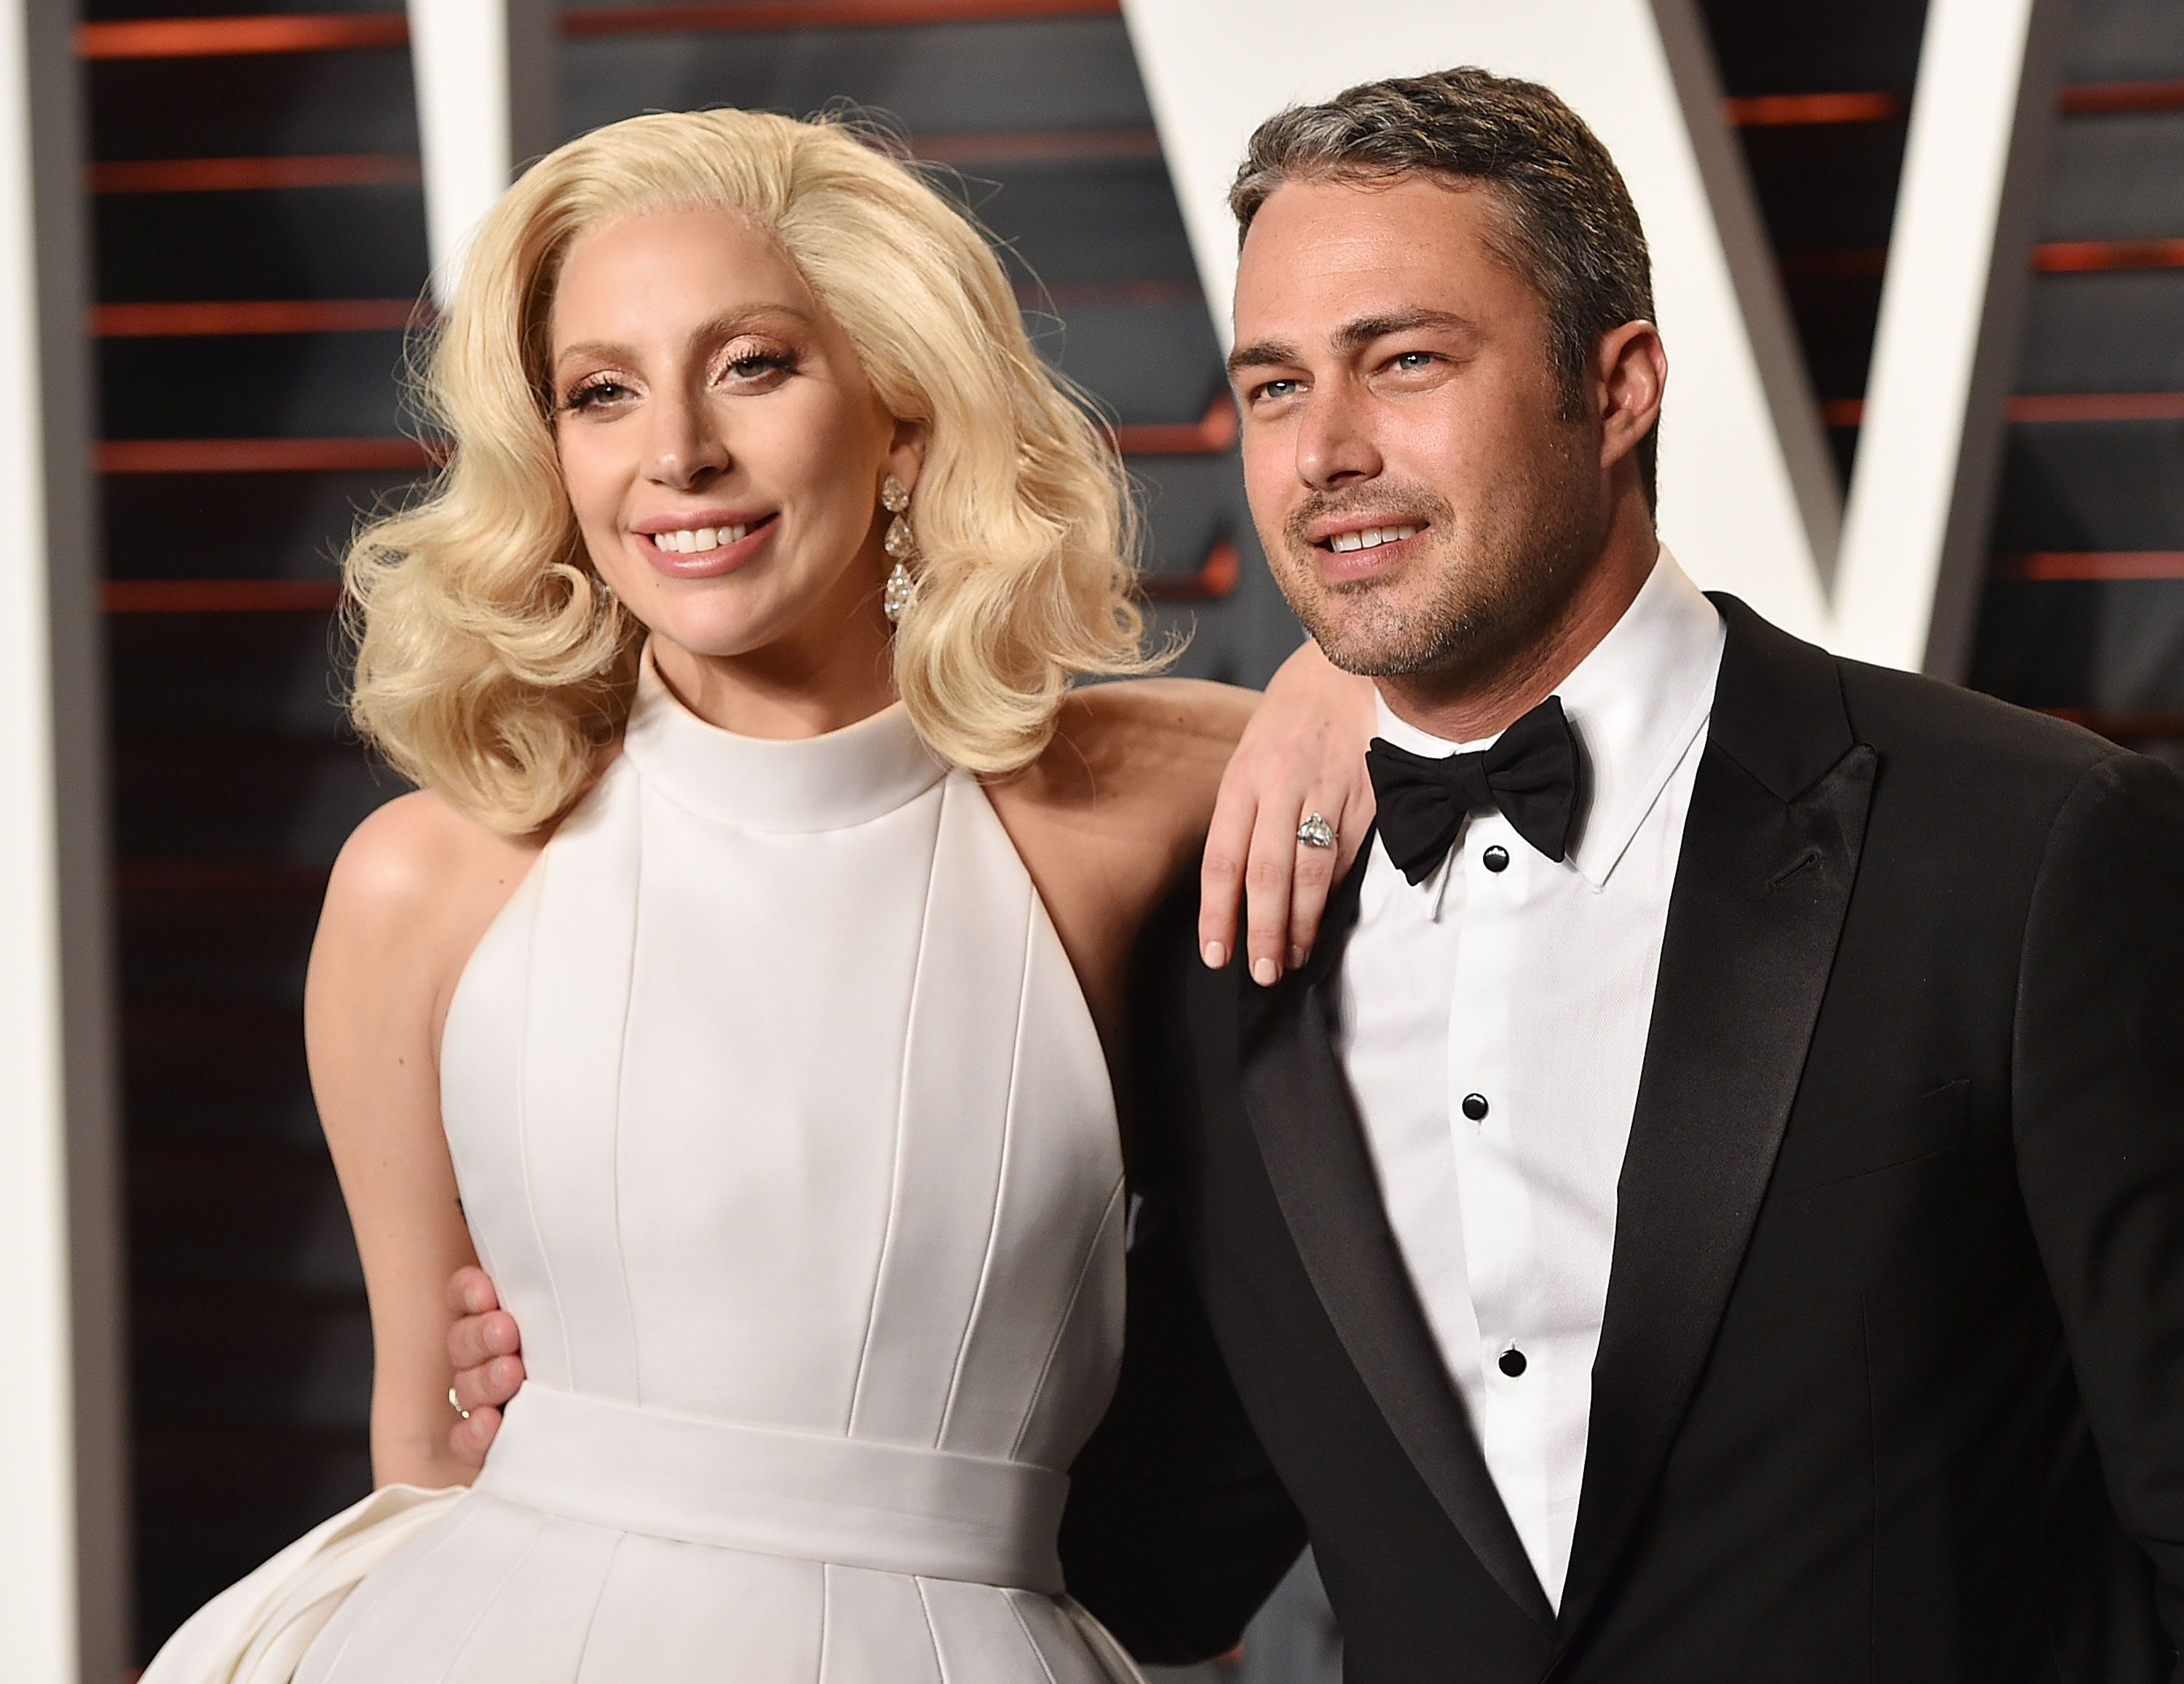 BEVERLY HILLS, CA - FEBRUARY 28:  Recording artist Lady Gaga, left, and Taylor Kinney arrive at the 2016 Vanity Fair Oscar Party Hosted By Graydon Carter at Wallis Annenberg Center for the Performing Arts on February 28, 2016 in Beverly Hills, California.  (Photo by John Shearer/Getty Images)